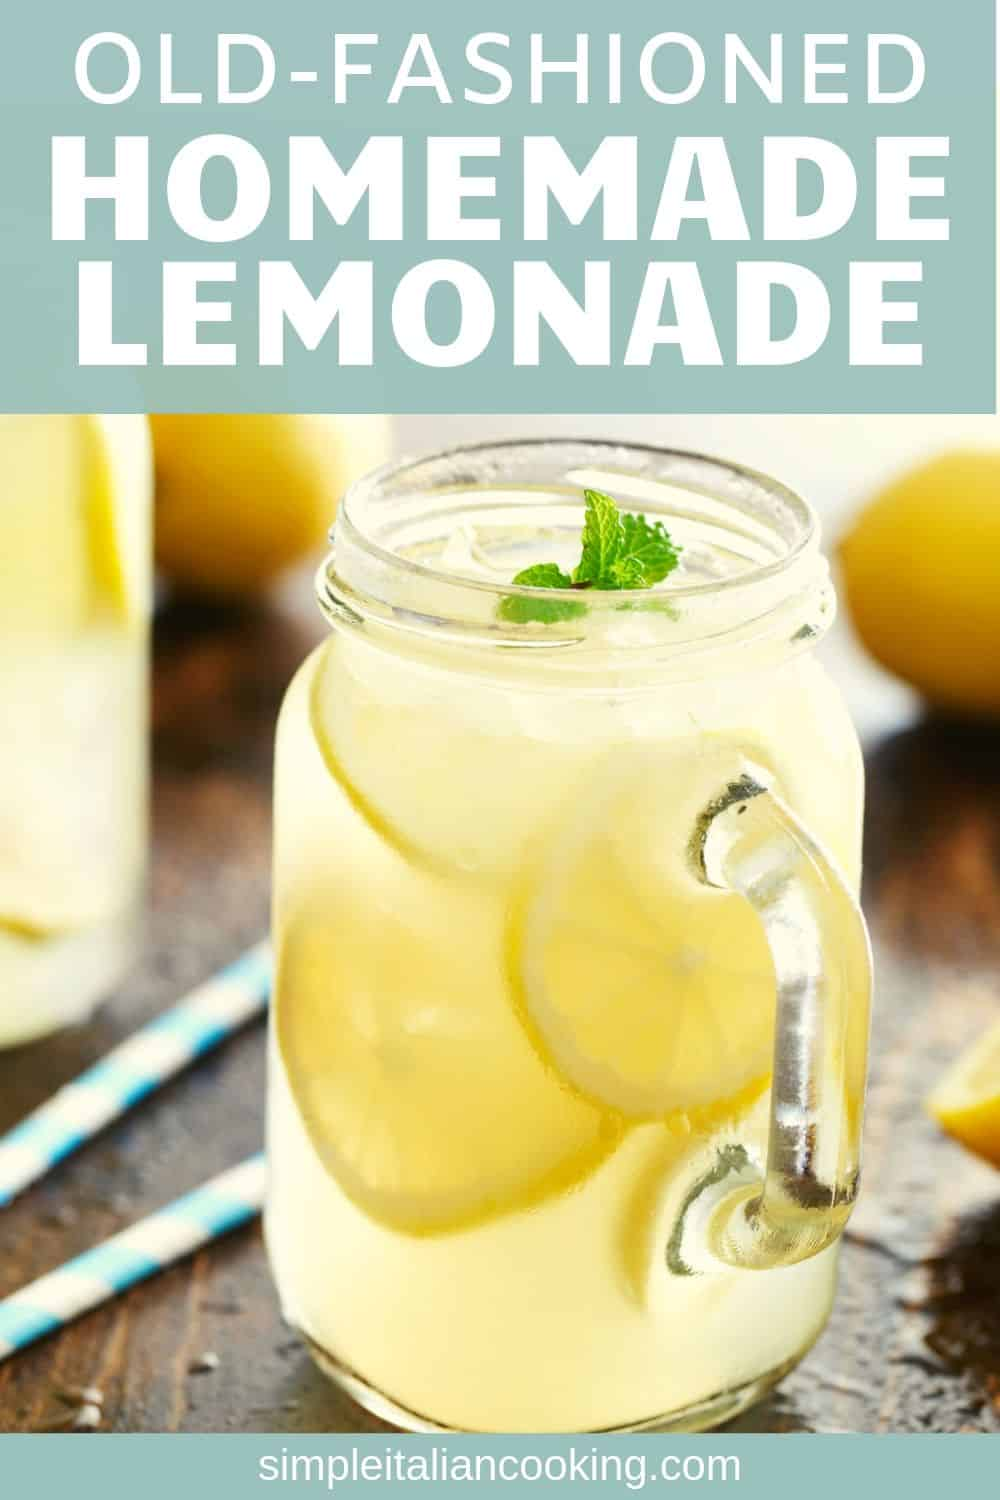 Here\'s a fresh lemonade recipe by the glass and made from real lemons. Fresh squeezed lemonade is healthier, easier and tastes just like old fashioned traditional lemonade! This recipe has ZERO calories!  #freshsqueezedlemonade #freshlemonaderecipe #freshsqueezedlemonaderecipeeasy #easyfreshqueezedlemonade #easylemonaderecipe #summerdrinks